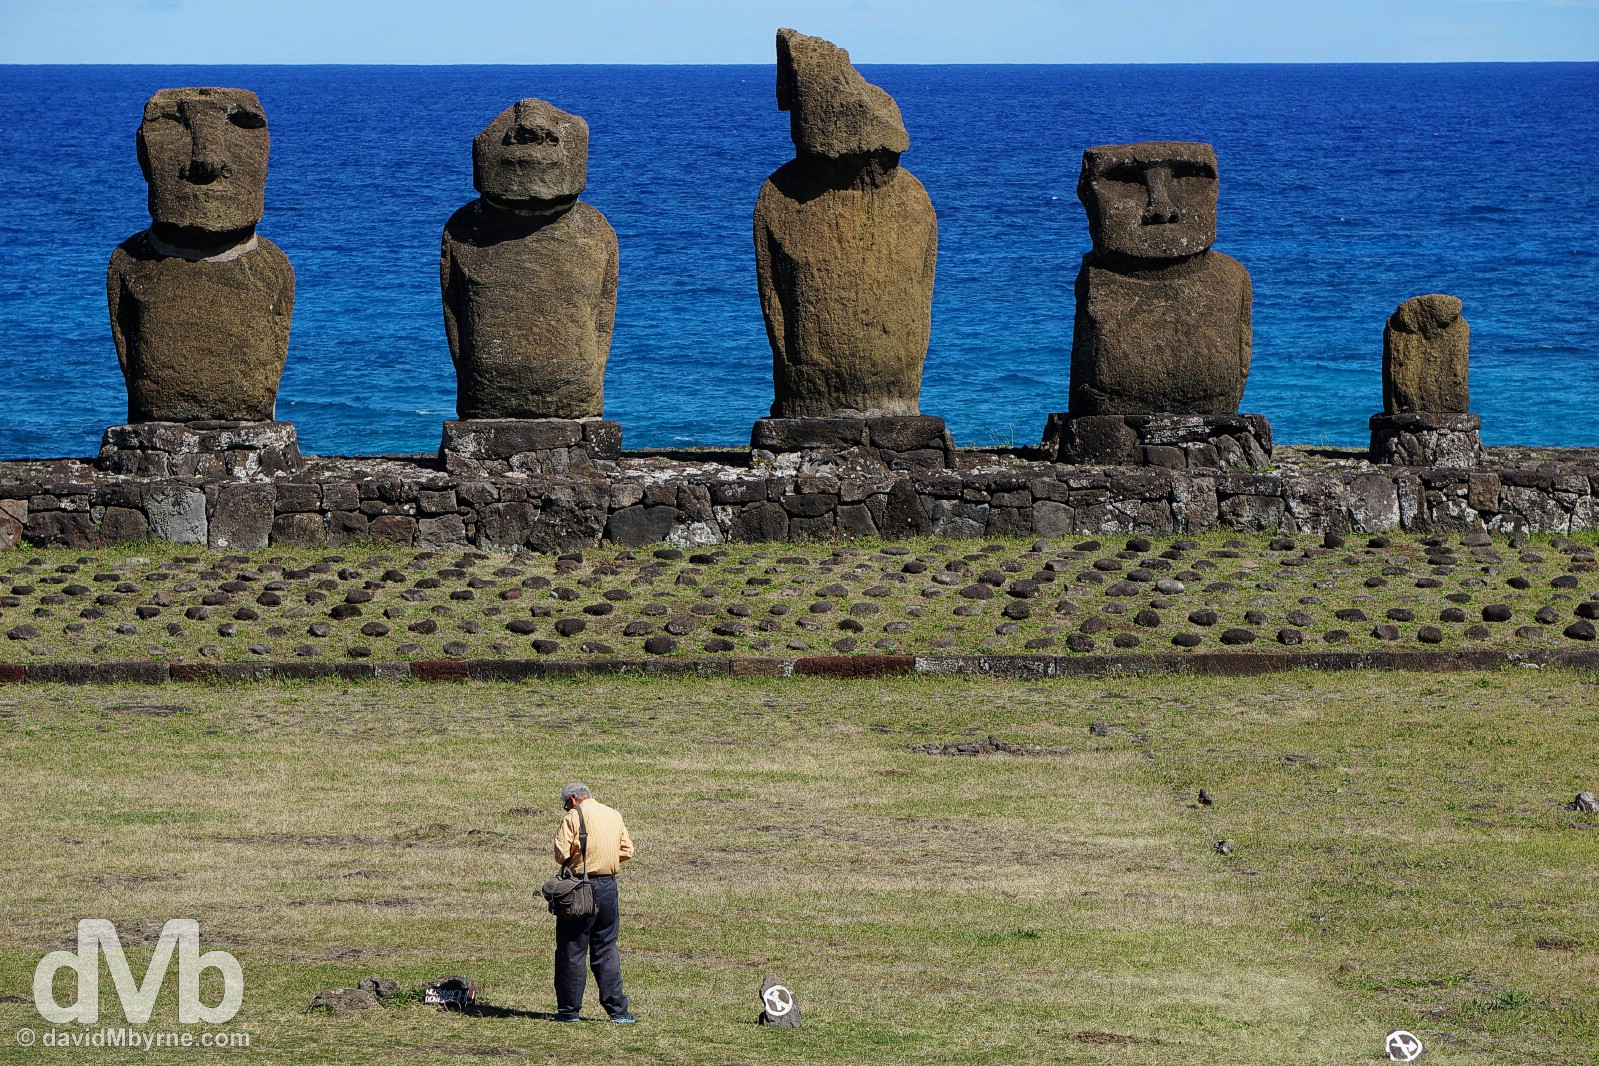 Tahai, Easter Island, Chile. September 30, 2015.